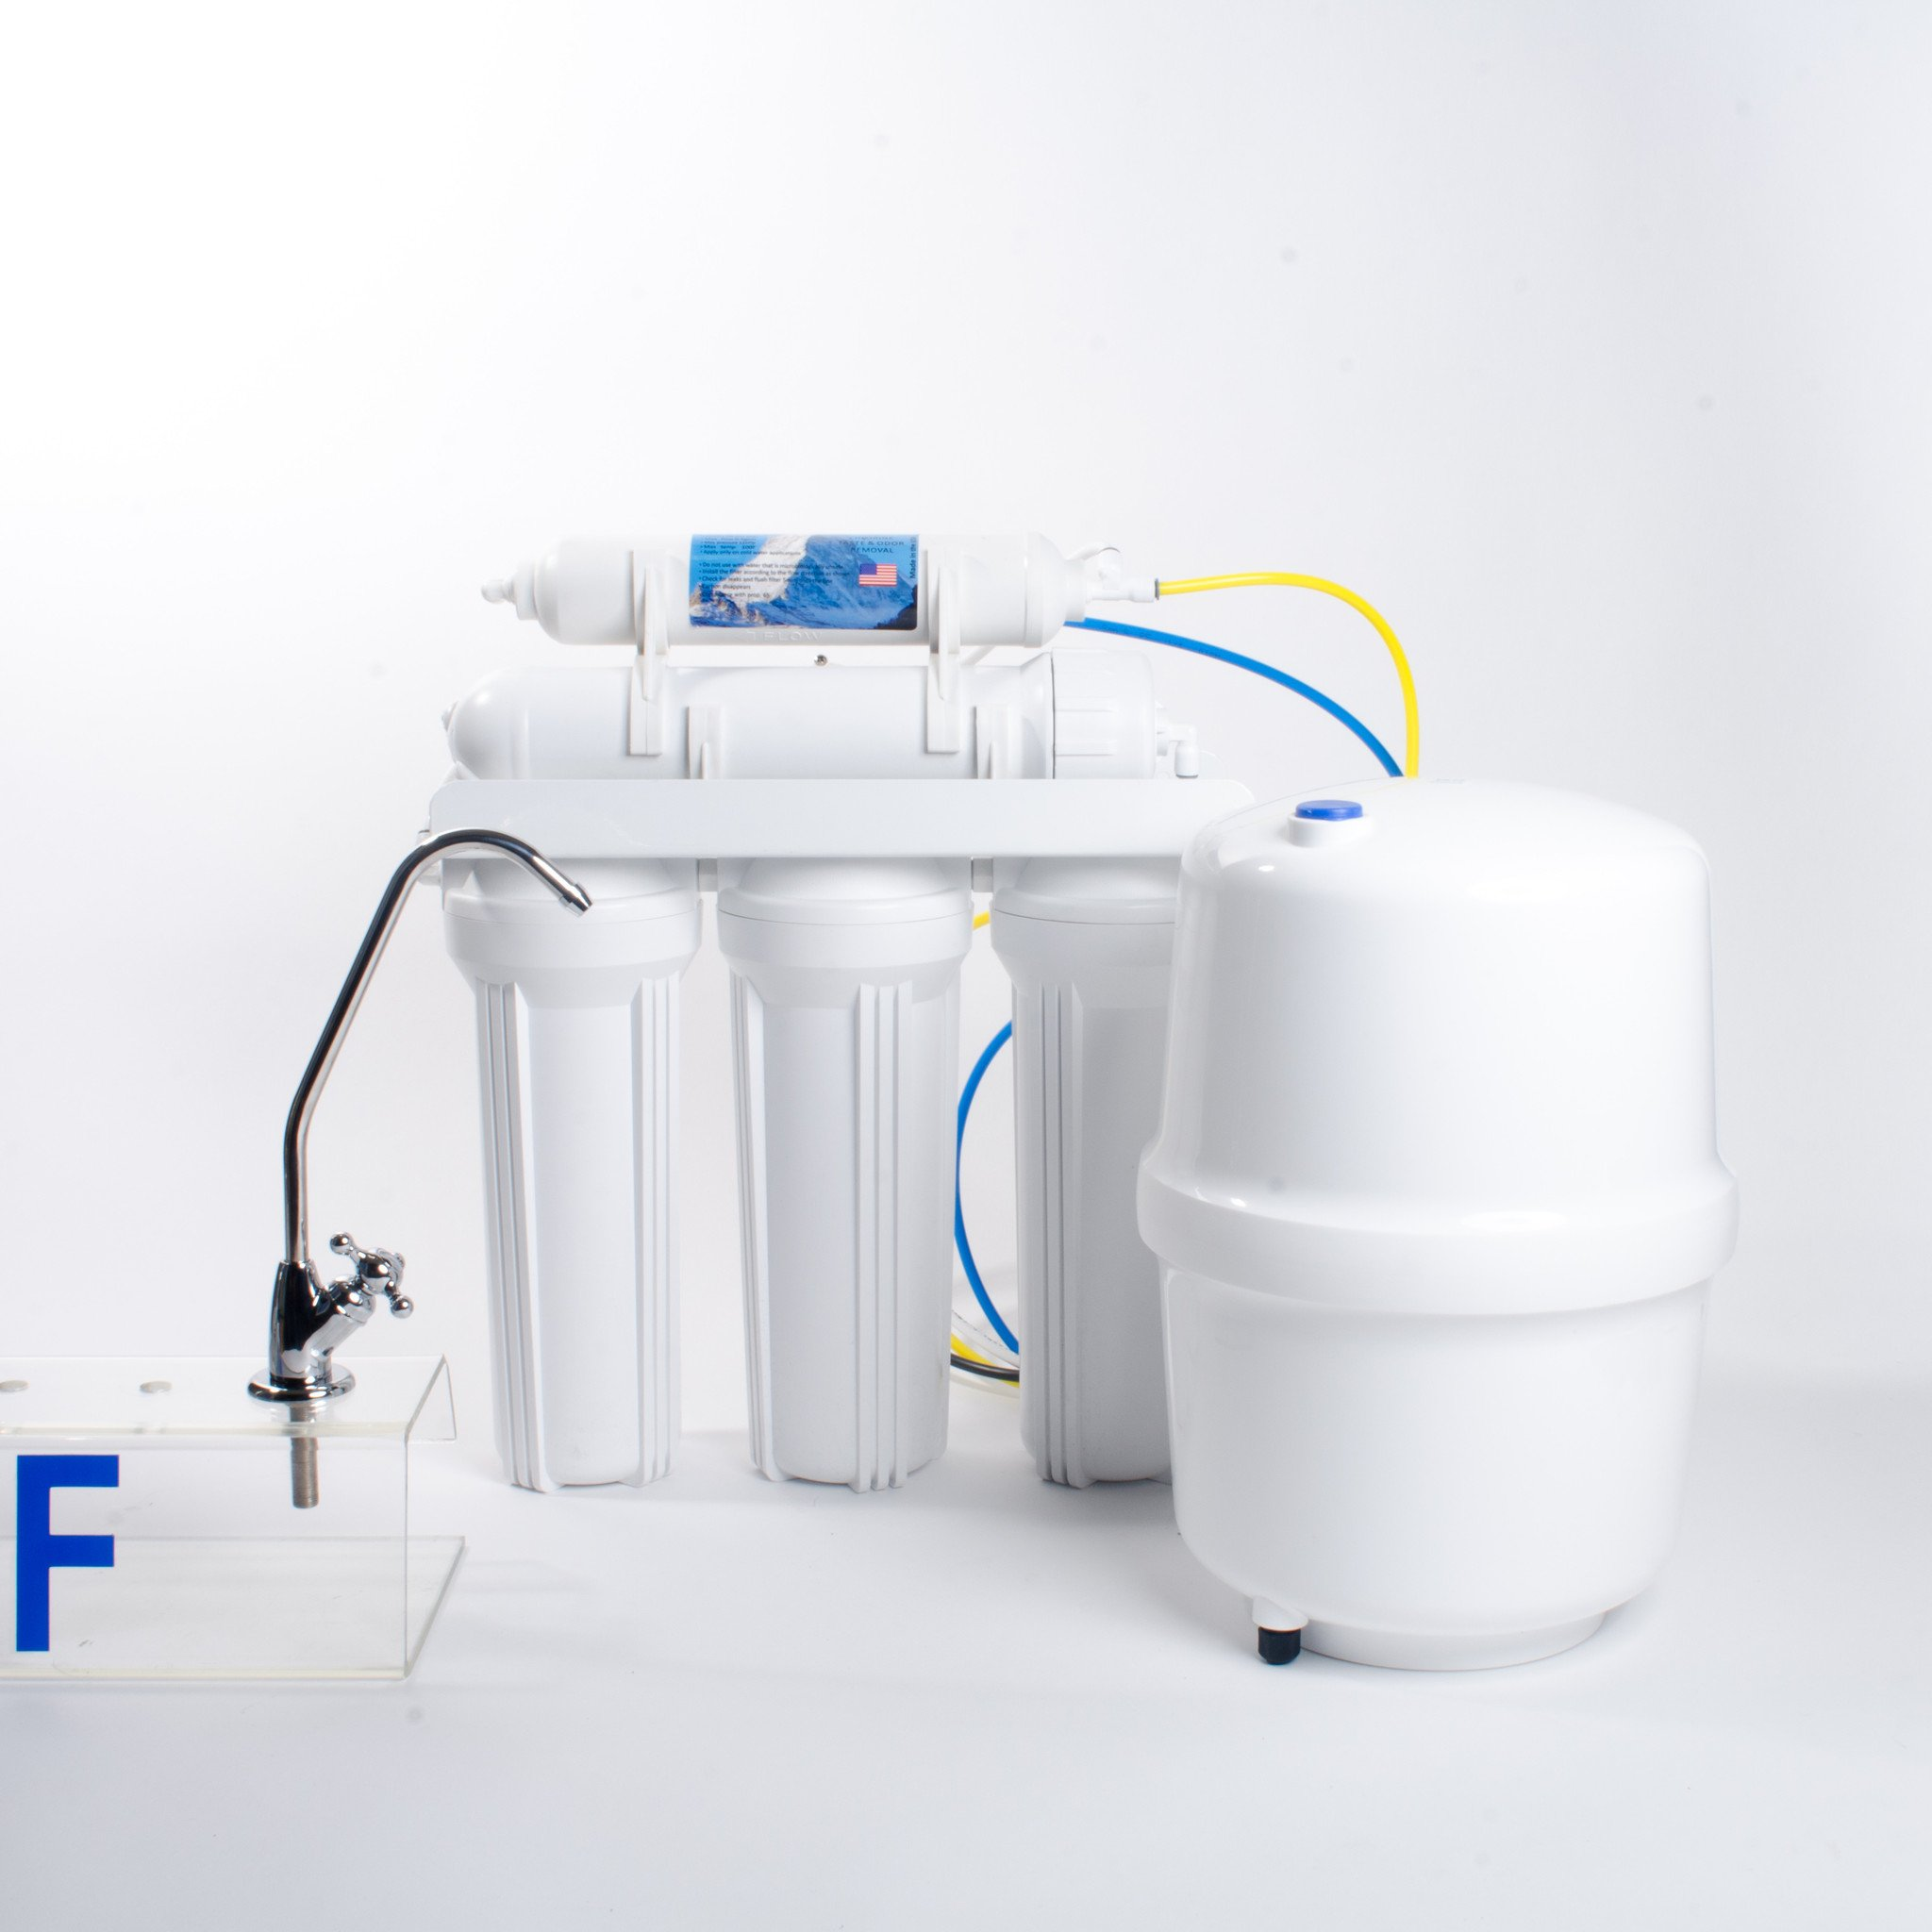 6-Stage Reverse Osmosis Water Filtration System with Alkaline Cartridge - 50 GPD by Anchor USA